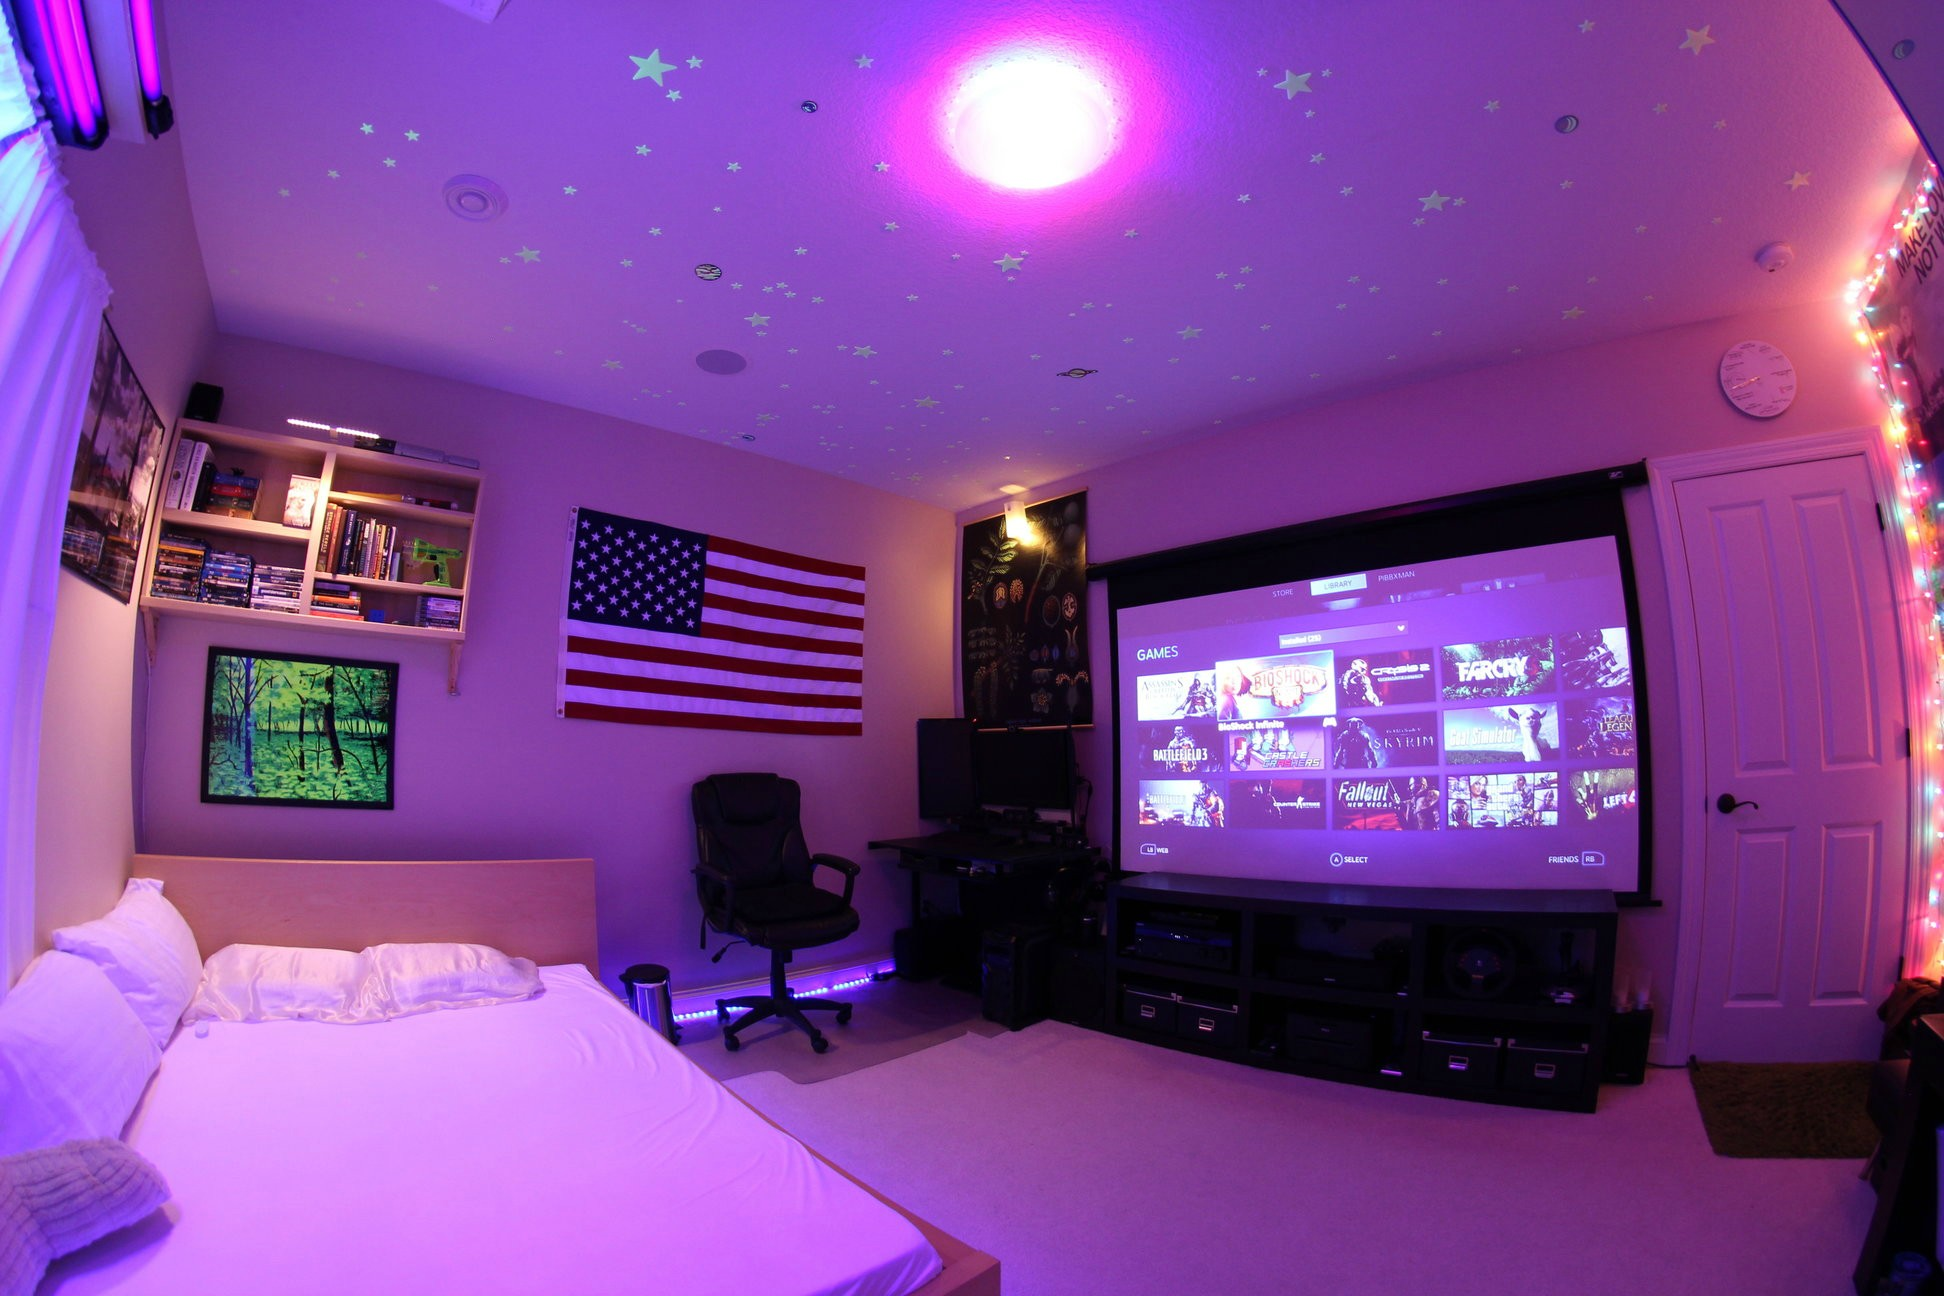 47 epic video game room decoration ideas for 2016 for Best room decoration